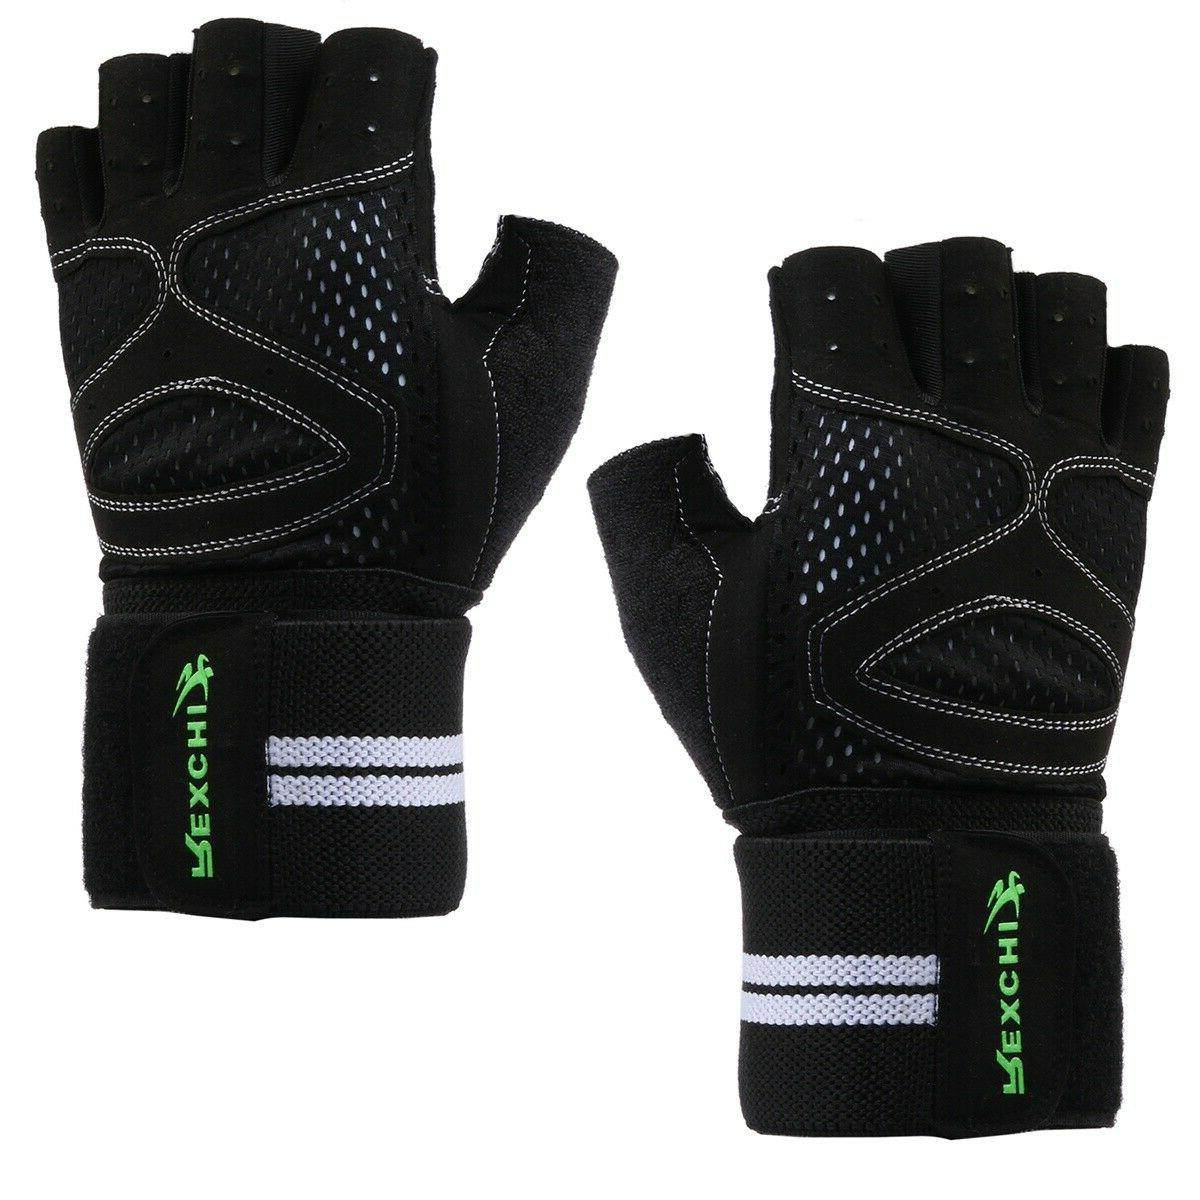 weight lifting sports gloves for workout gym